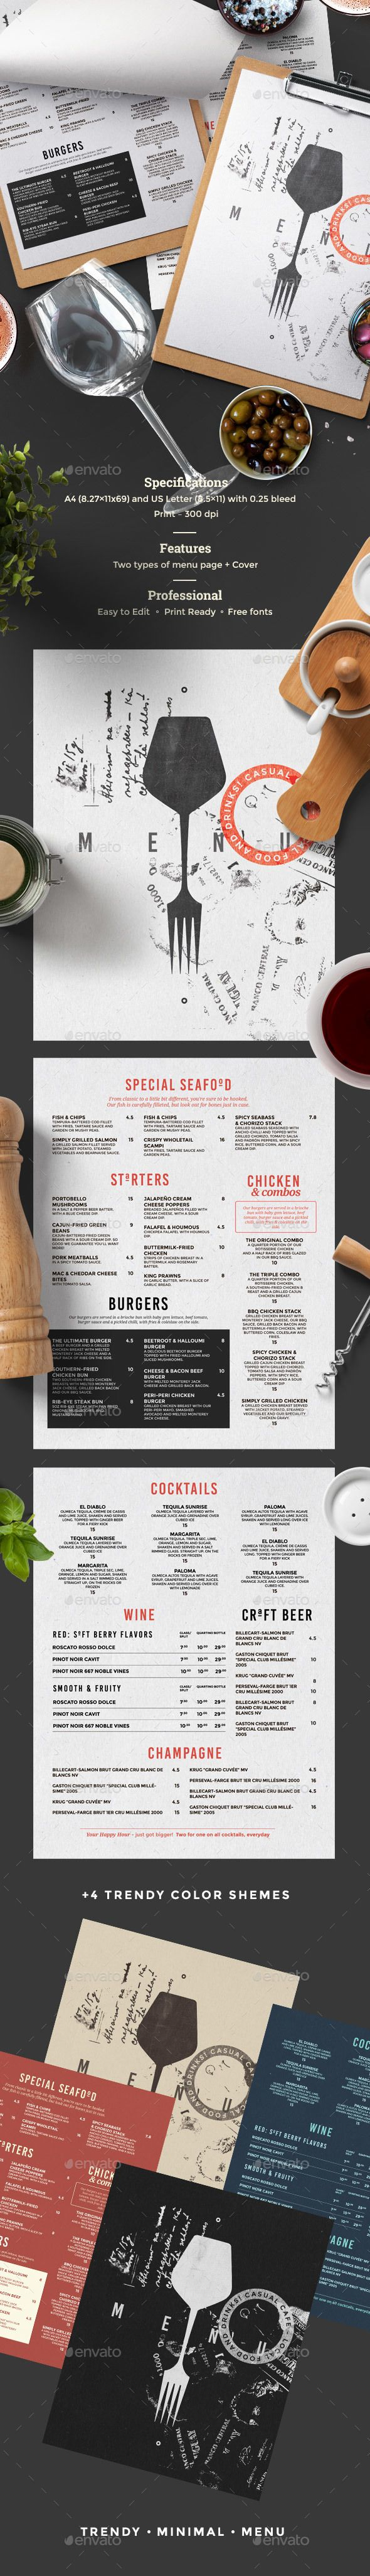 Restaurant Menu | Pinterest | Tarjetas